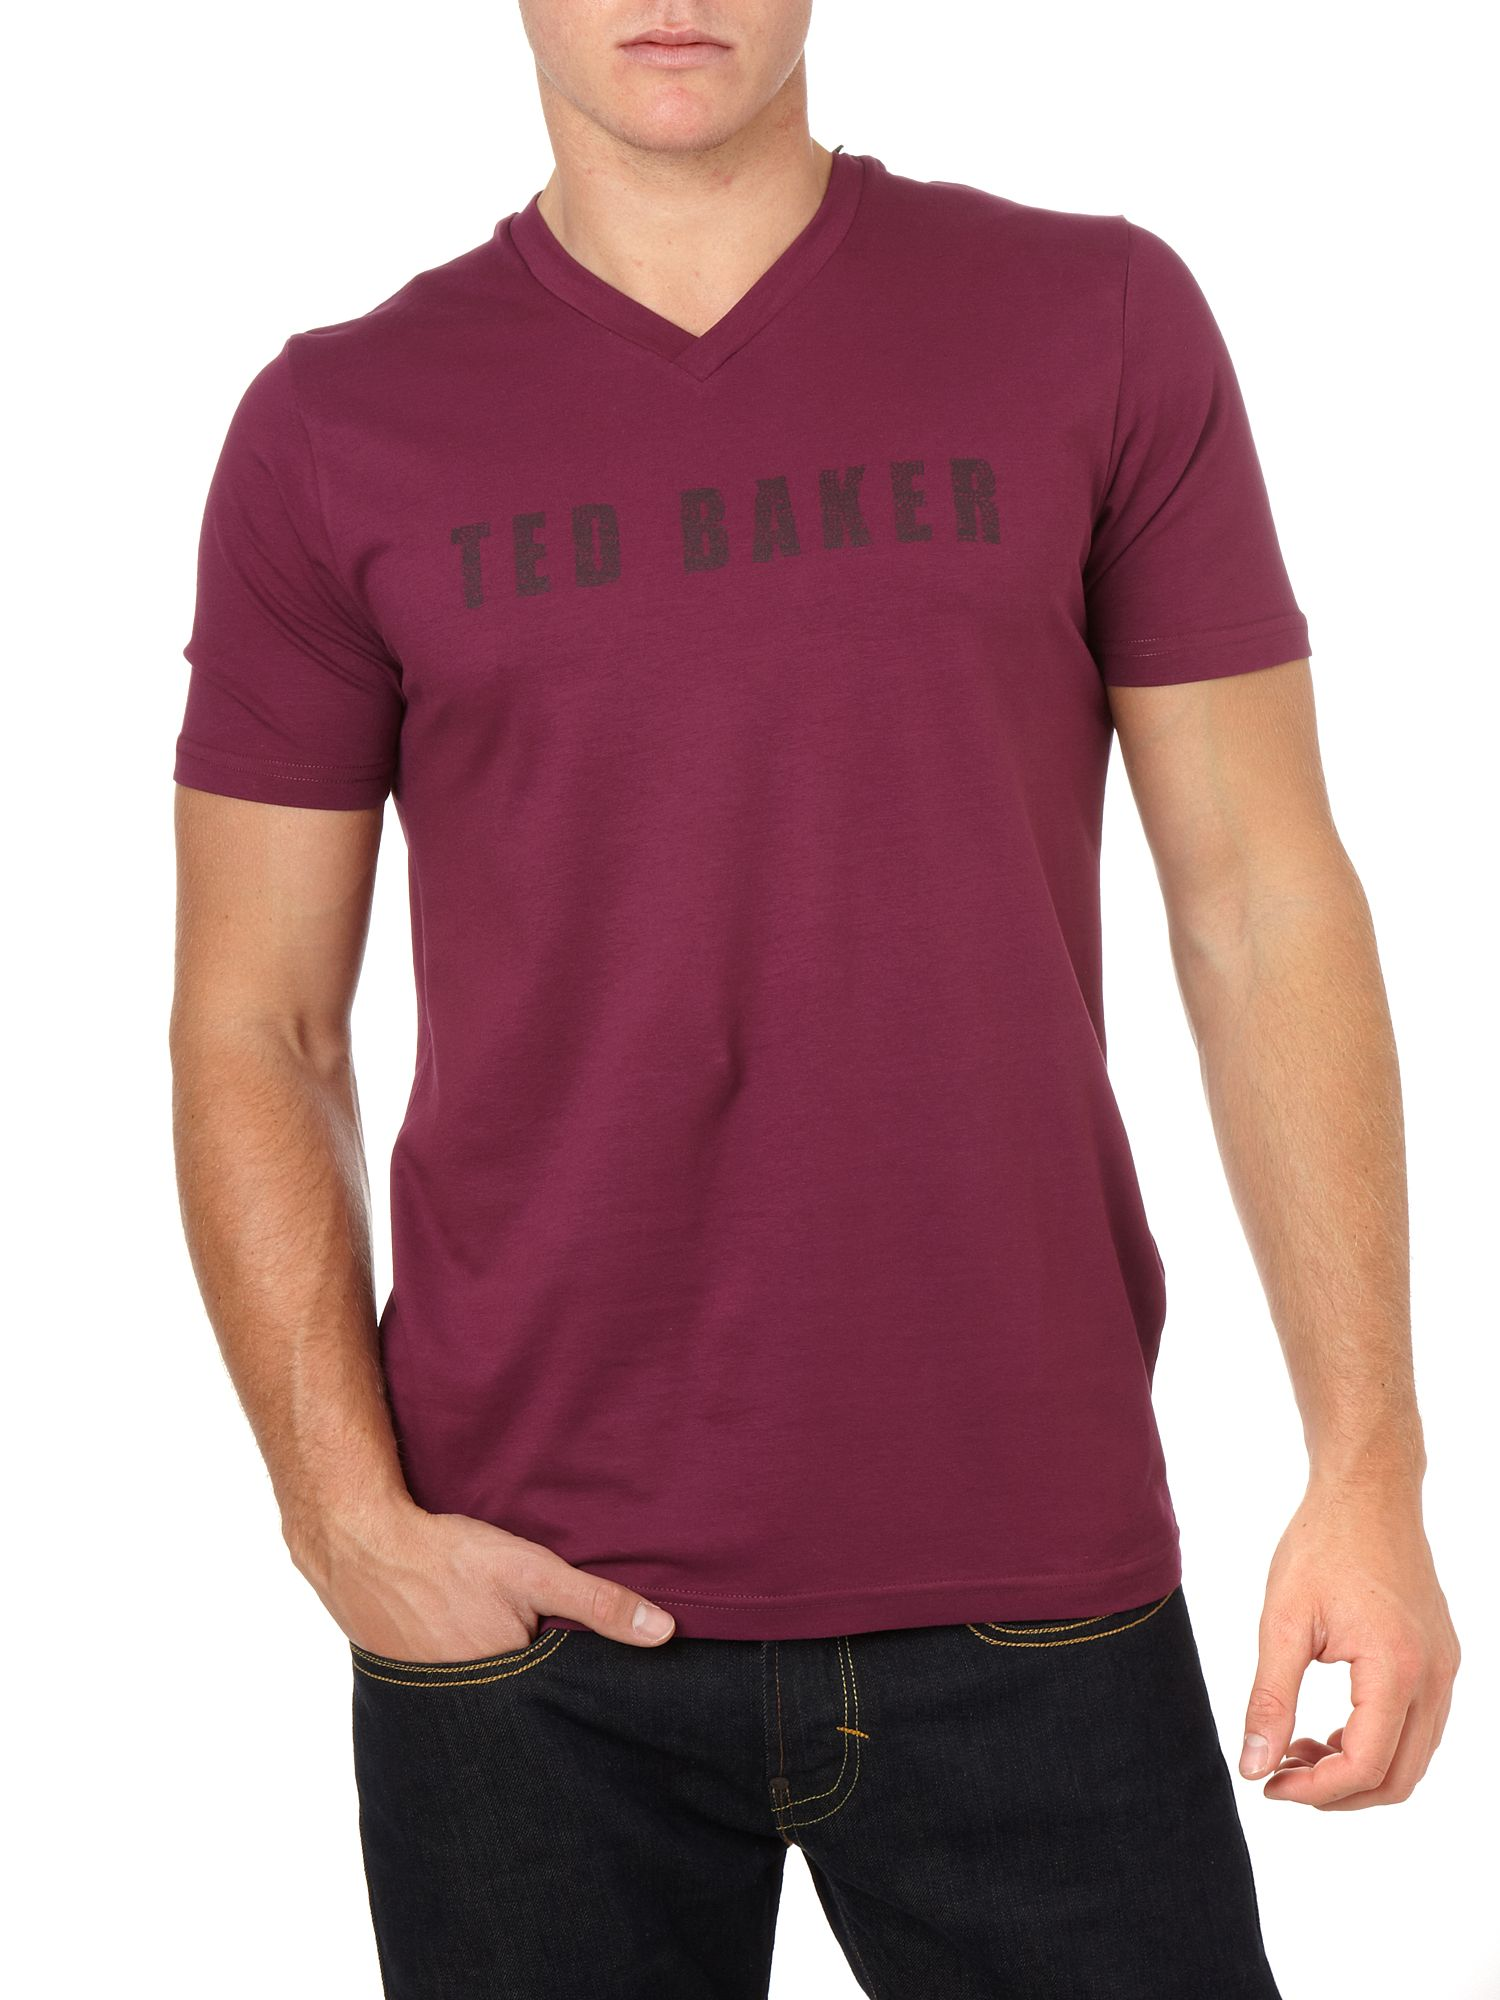 Ted Baker Logo print v neck t-shirt Purple product image